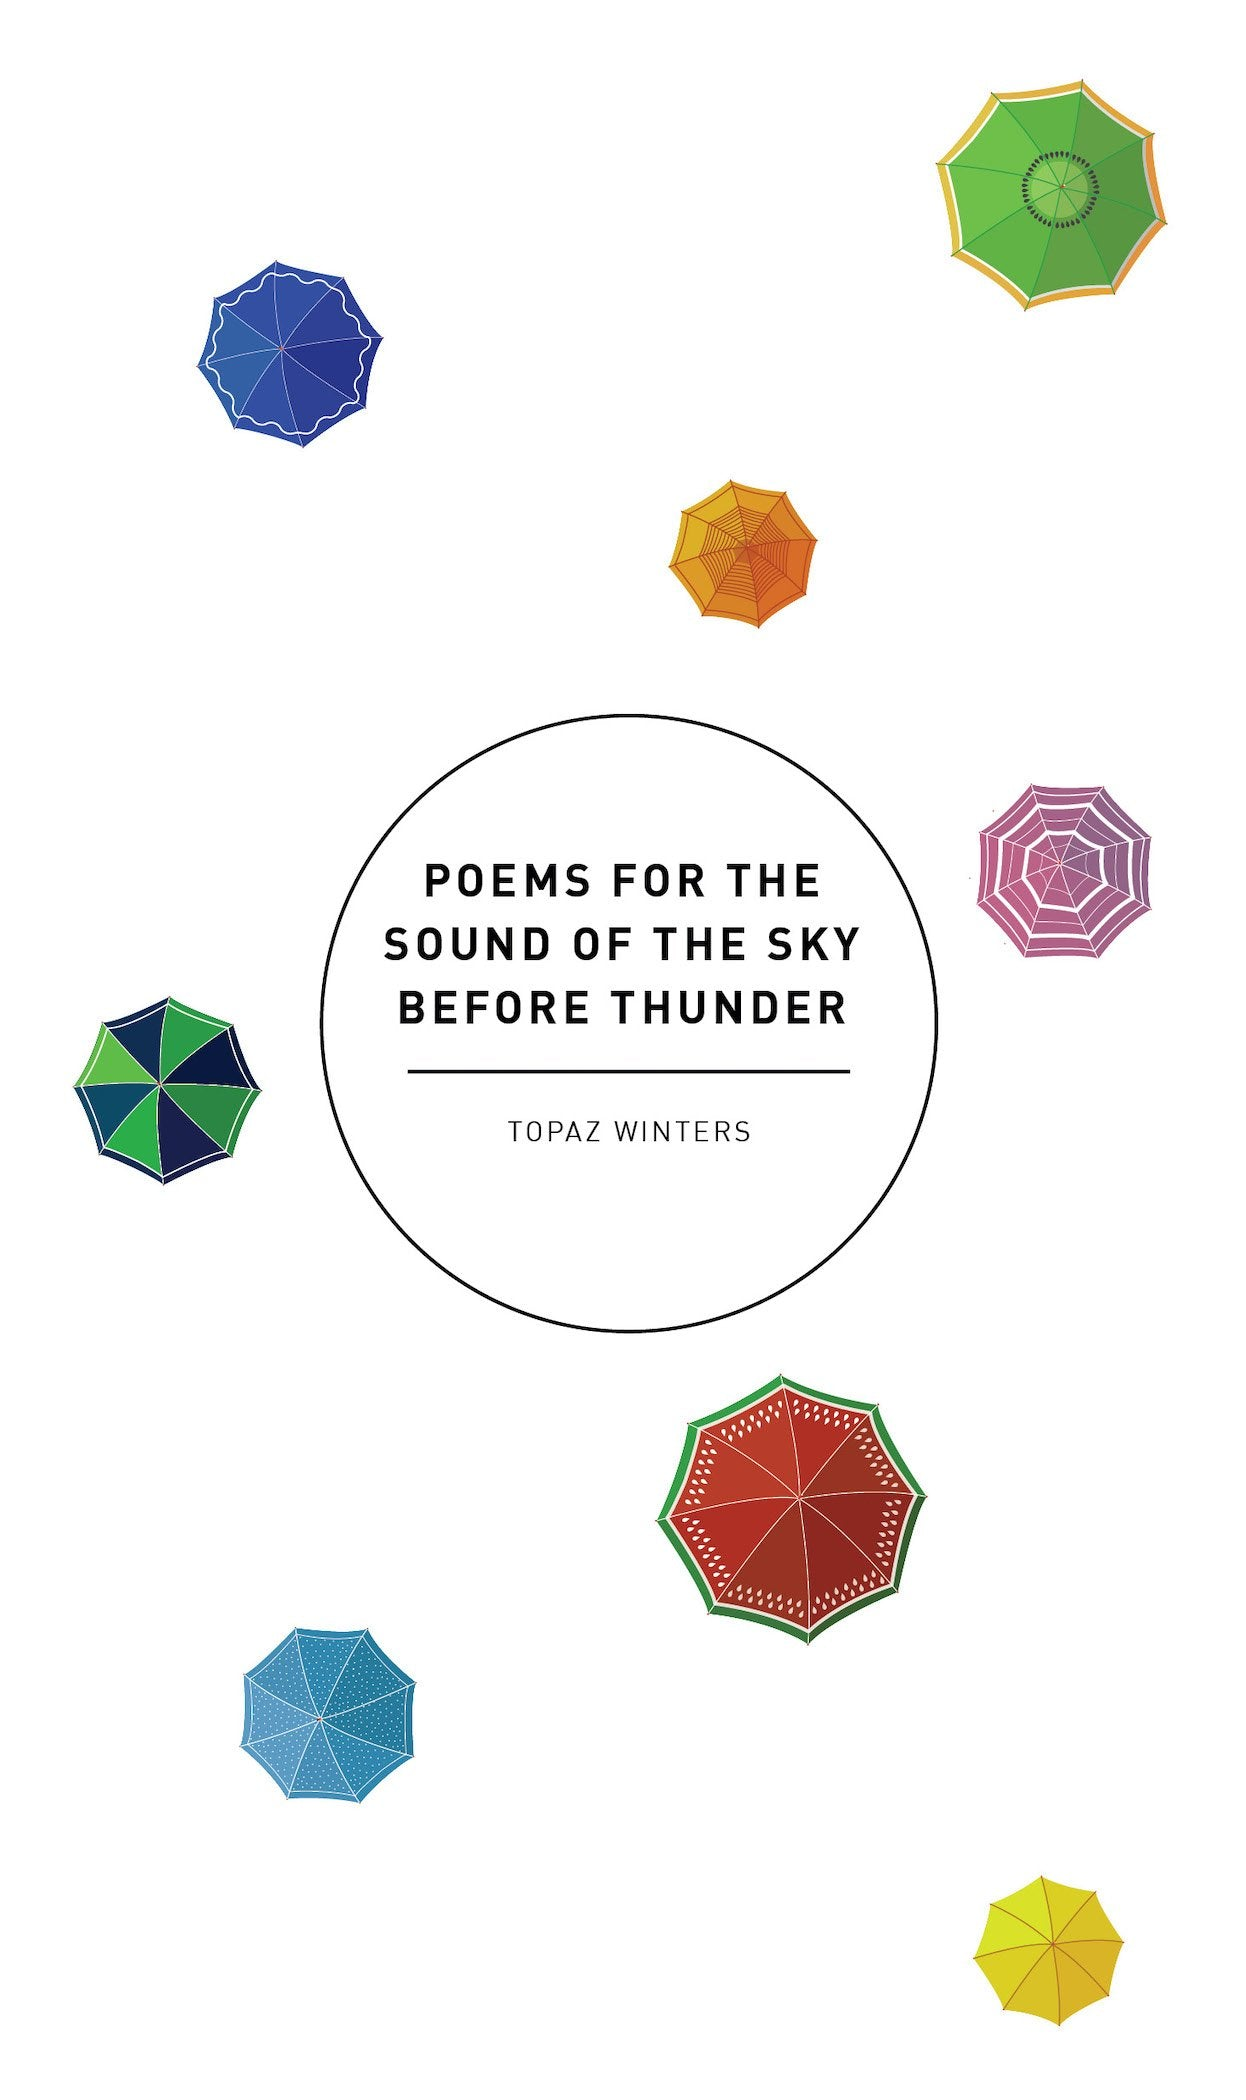 Poems For The Sound Of The Sky Before Thunder